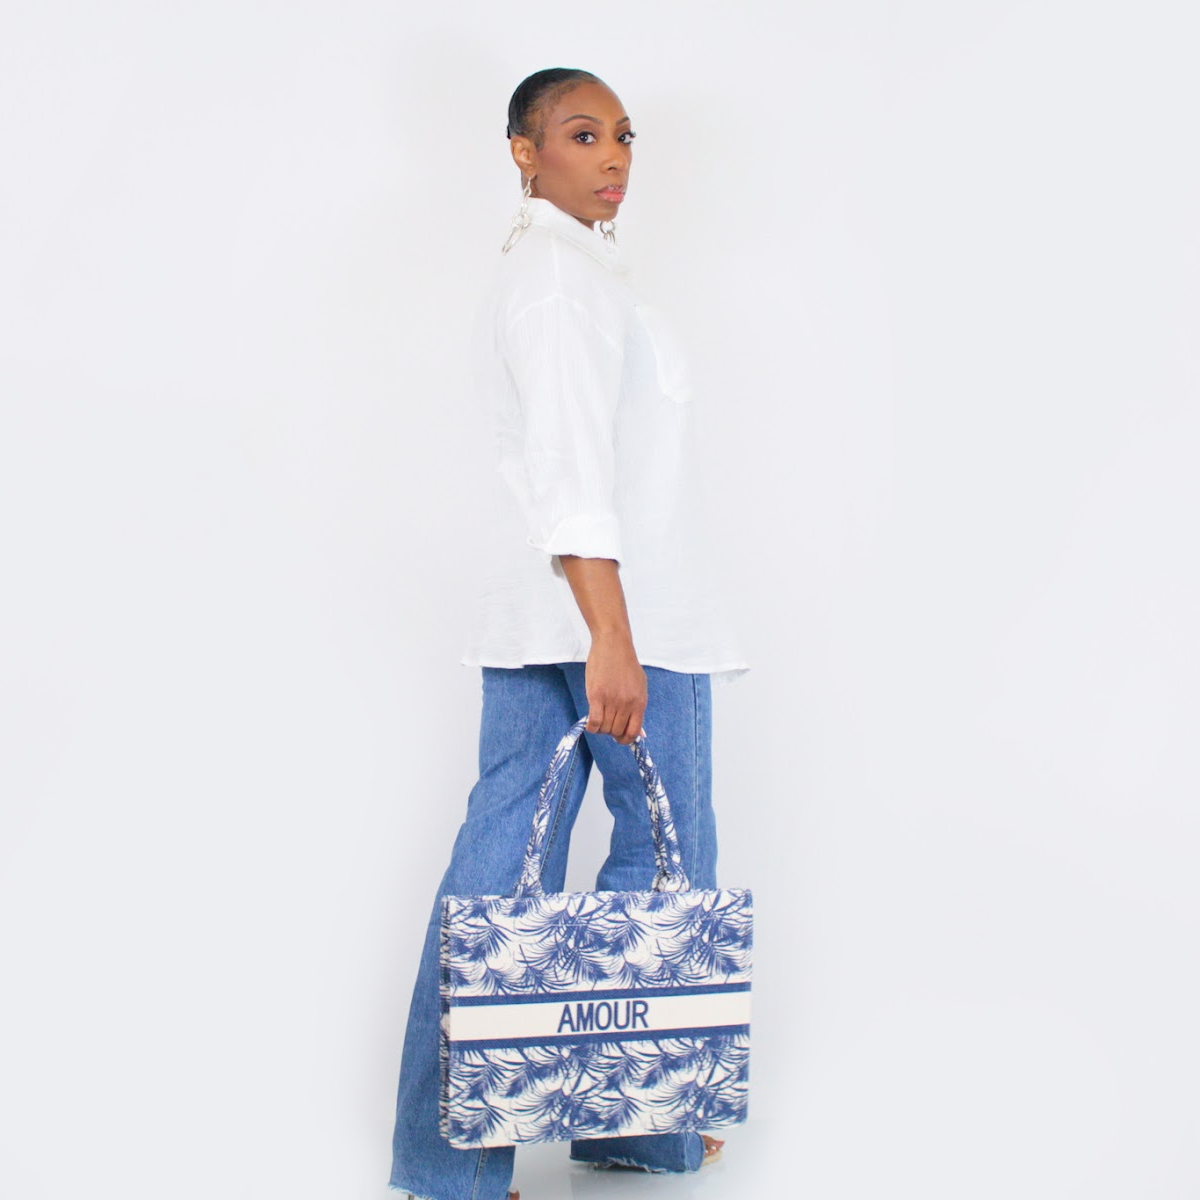 Amour Book Tote (Navy)